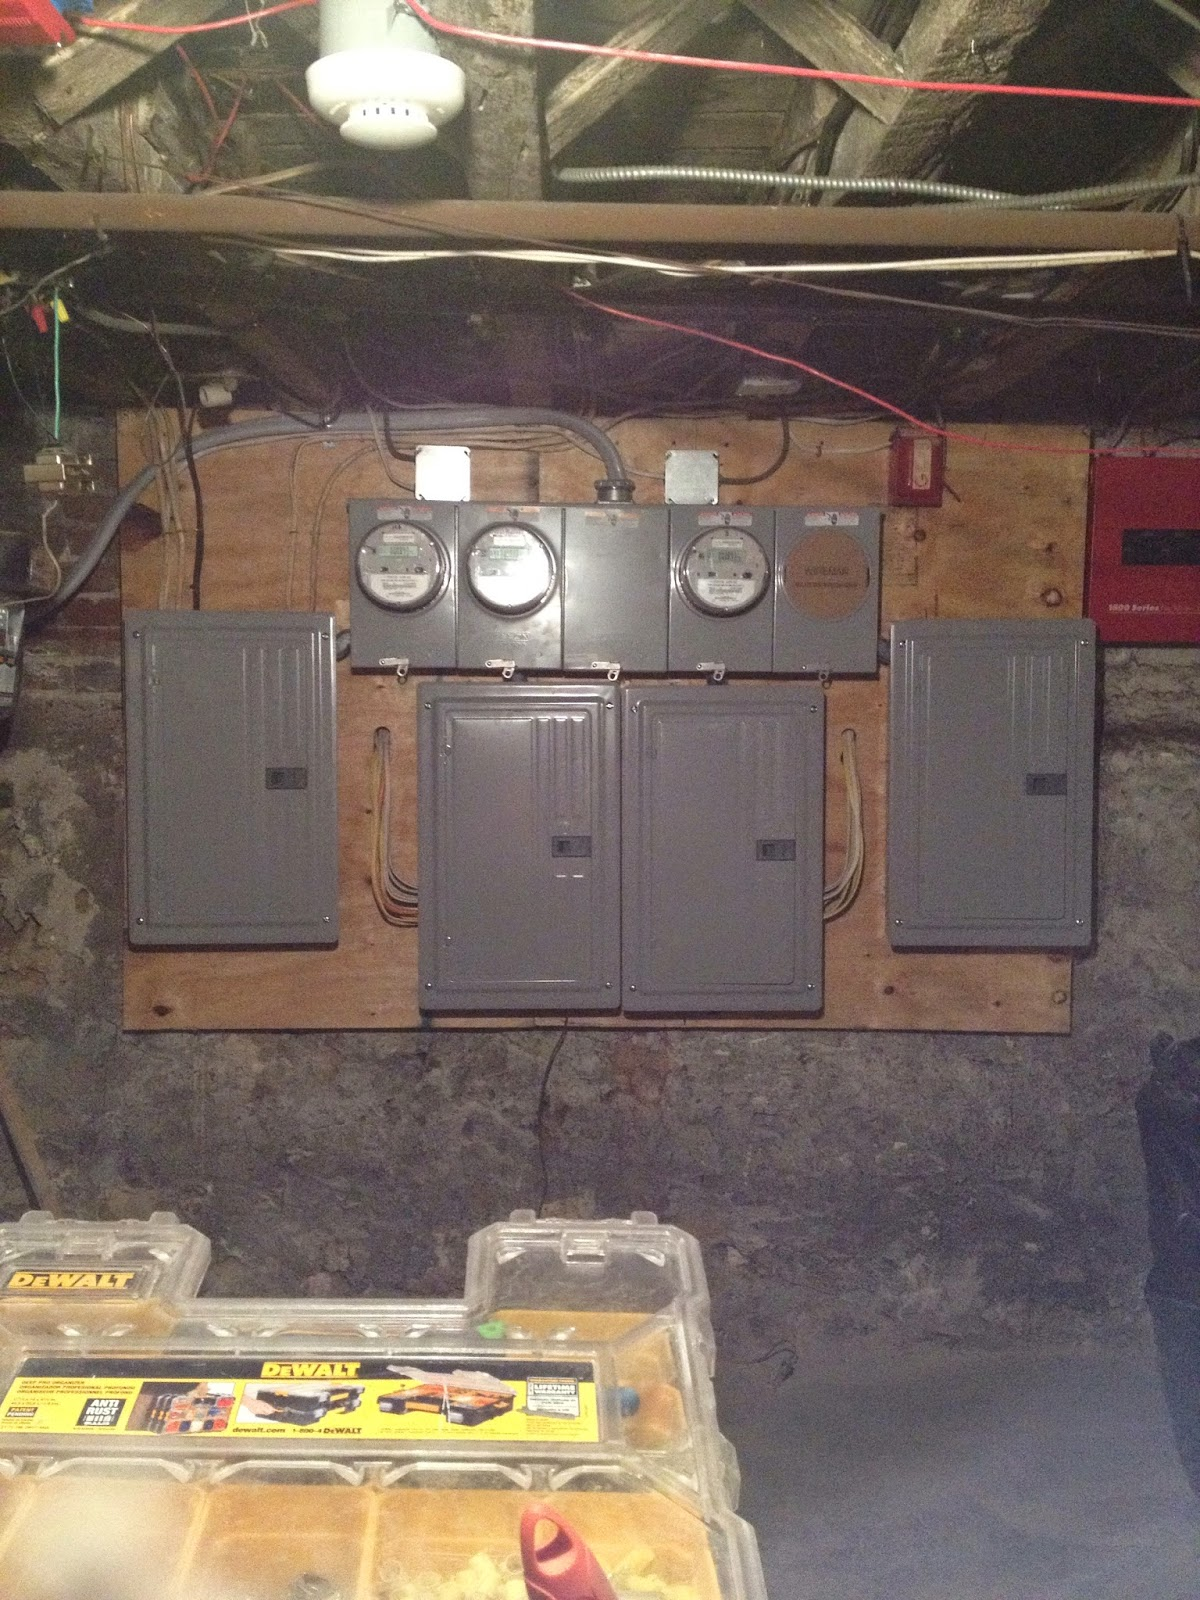 Electrical Panels, Generation 3 Electric